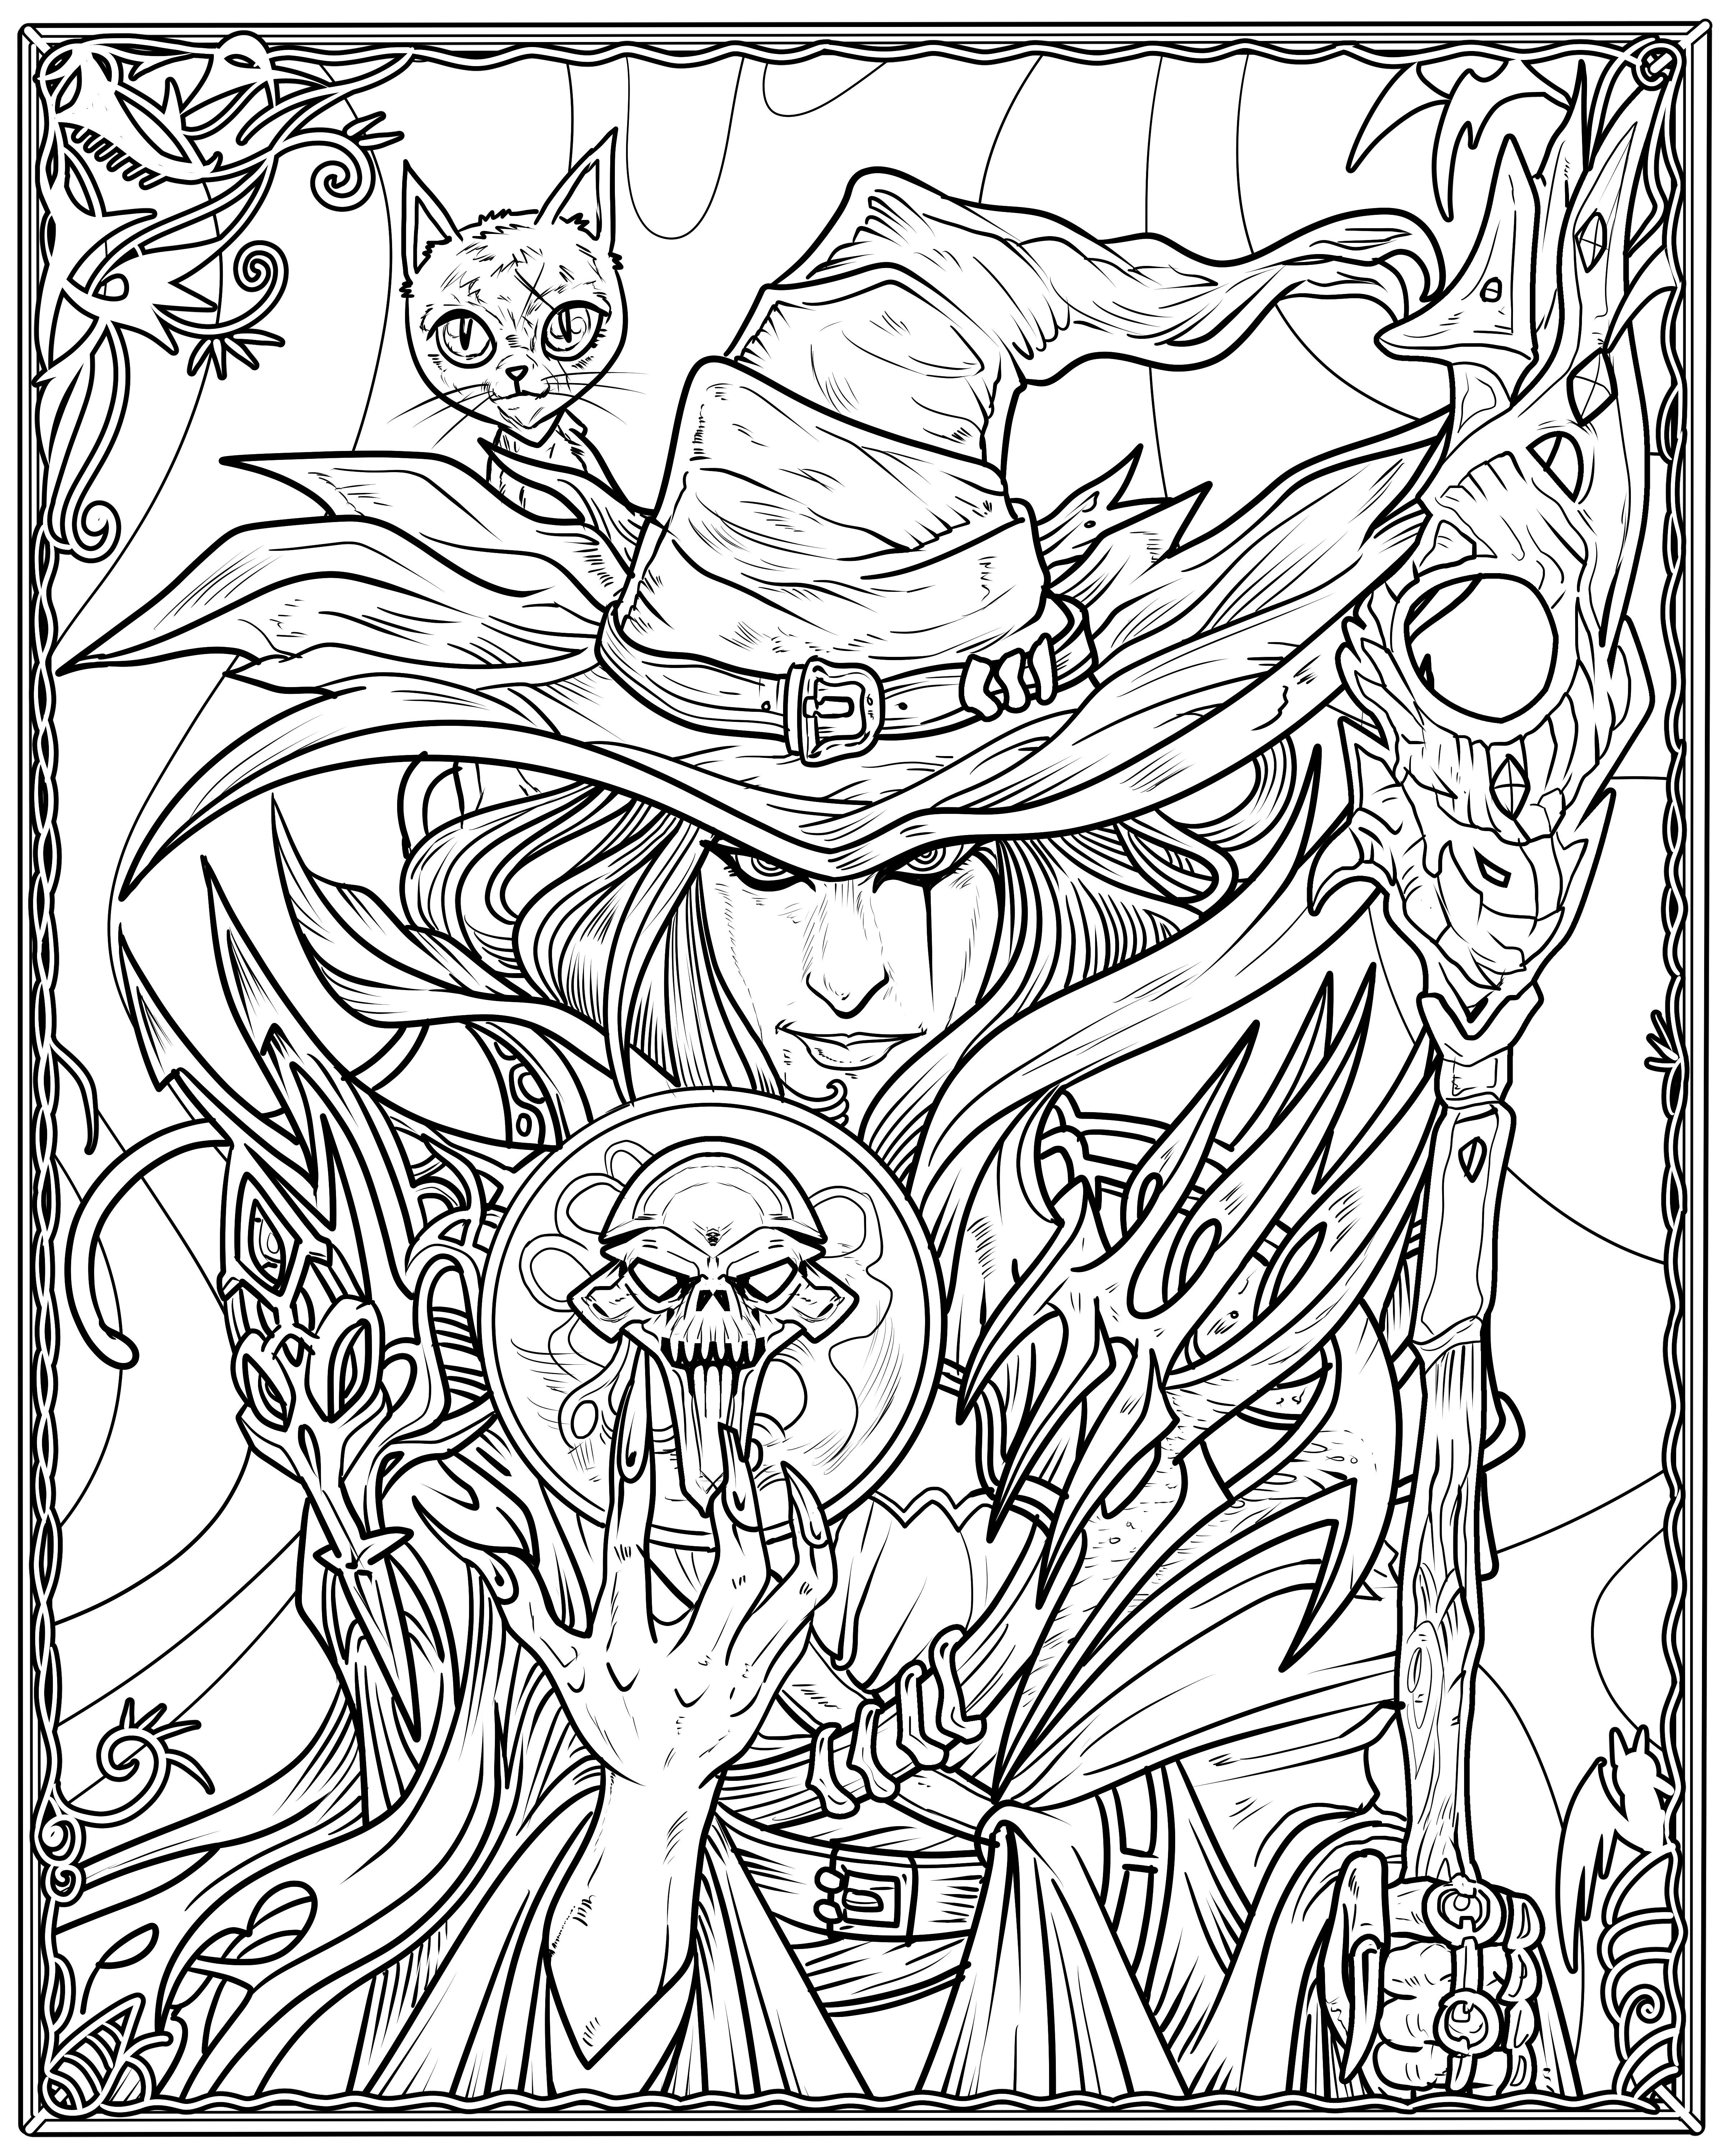 Witch Coloring Page Halloweencoloringpages Witch Coloring Page Witch Coloring Pages Cool Coloring Pages Spring Coloring Pages